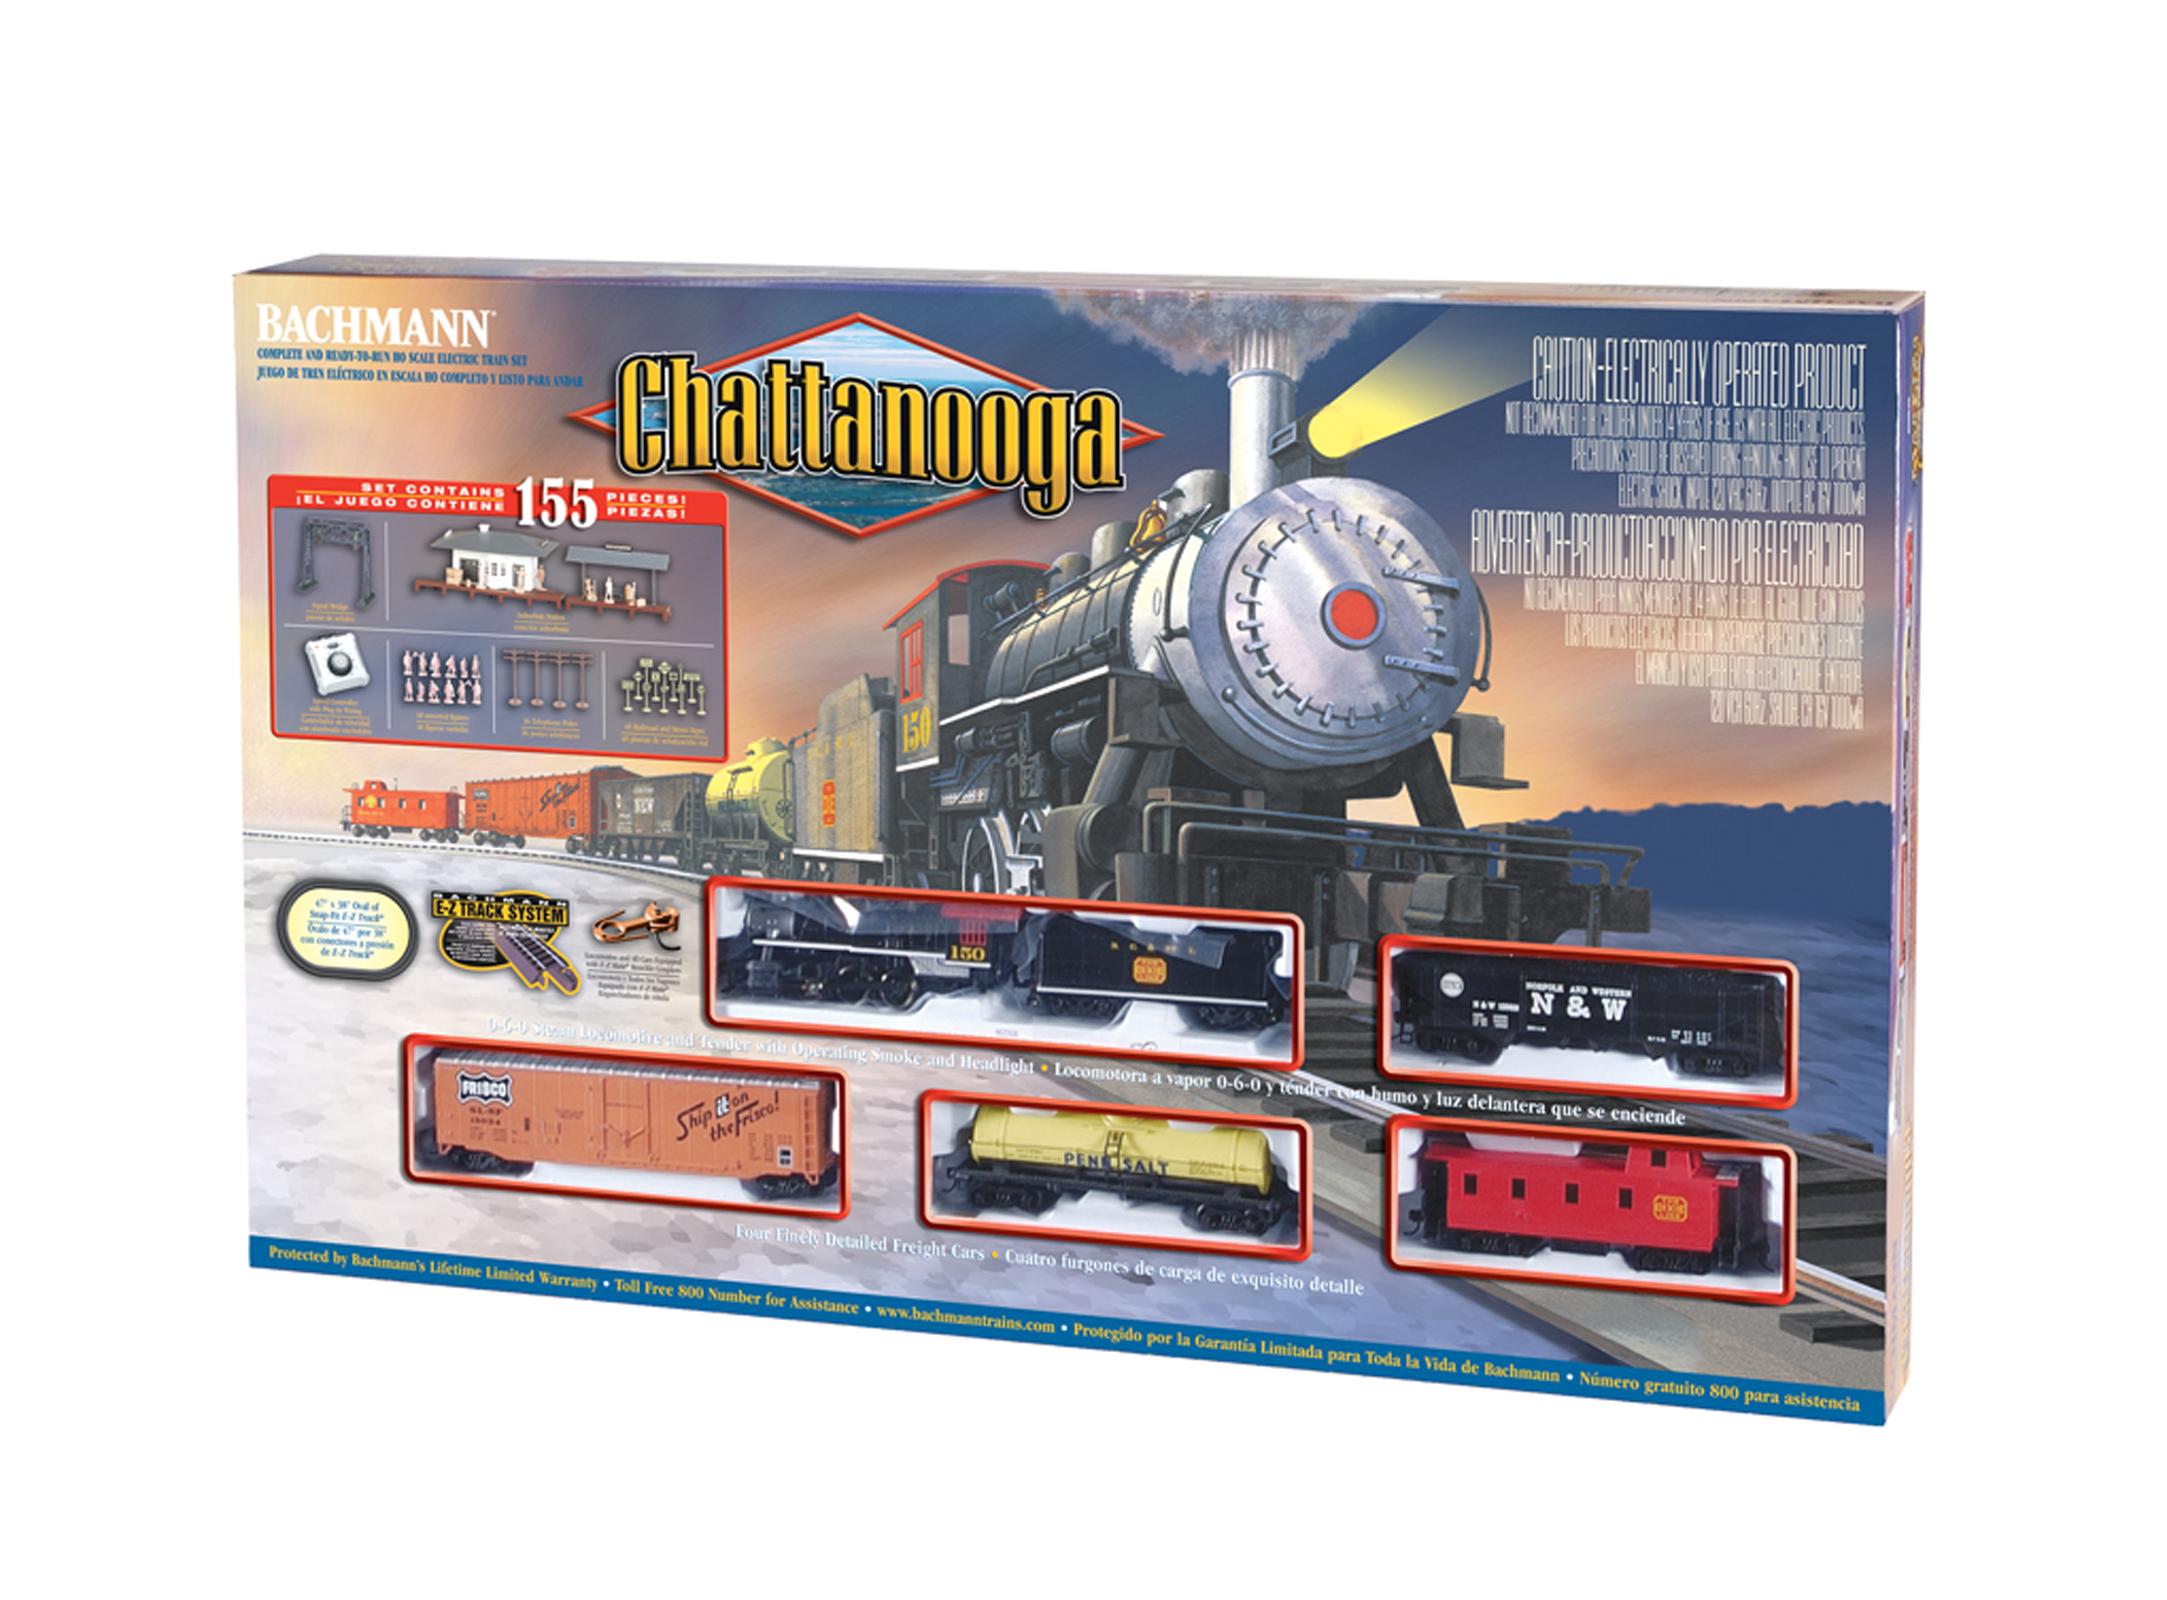 Bachmann Trains Chattanooga HO Scale Ready To Run Electric Train Set by Bachmann Trains